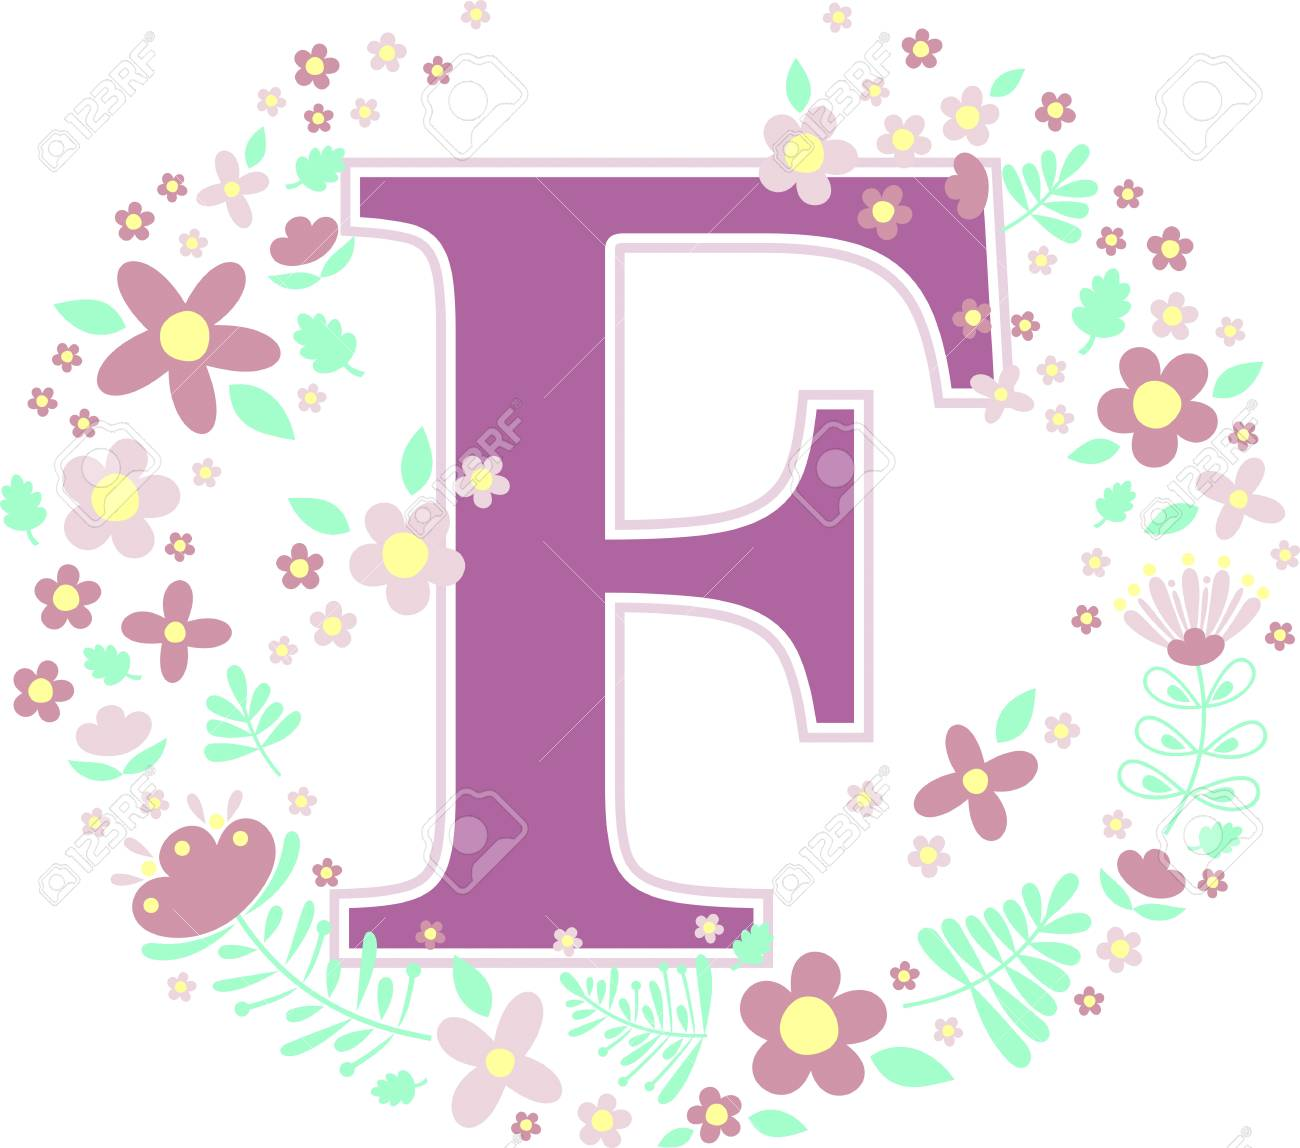 initial letter f with decorative flowers and design elements isolated on  white background. can be 8c2b9dcda93a